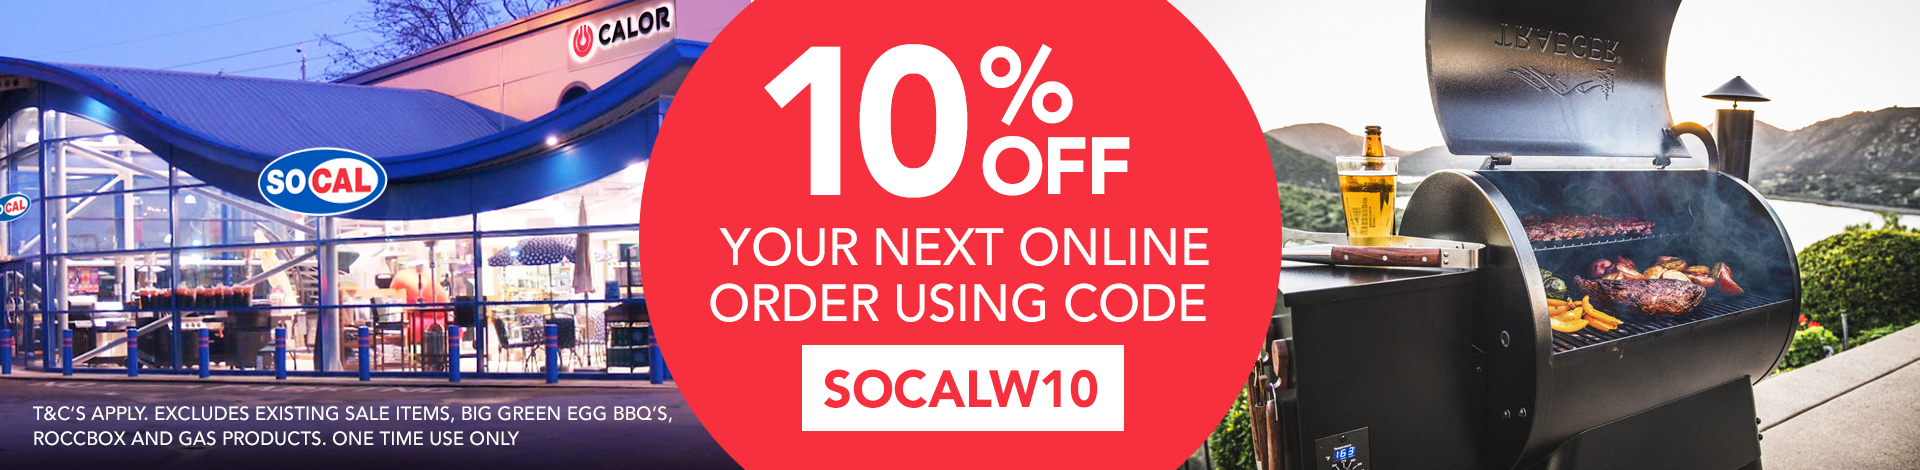 Happier New Year get 10% off your next online